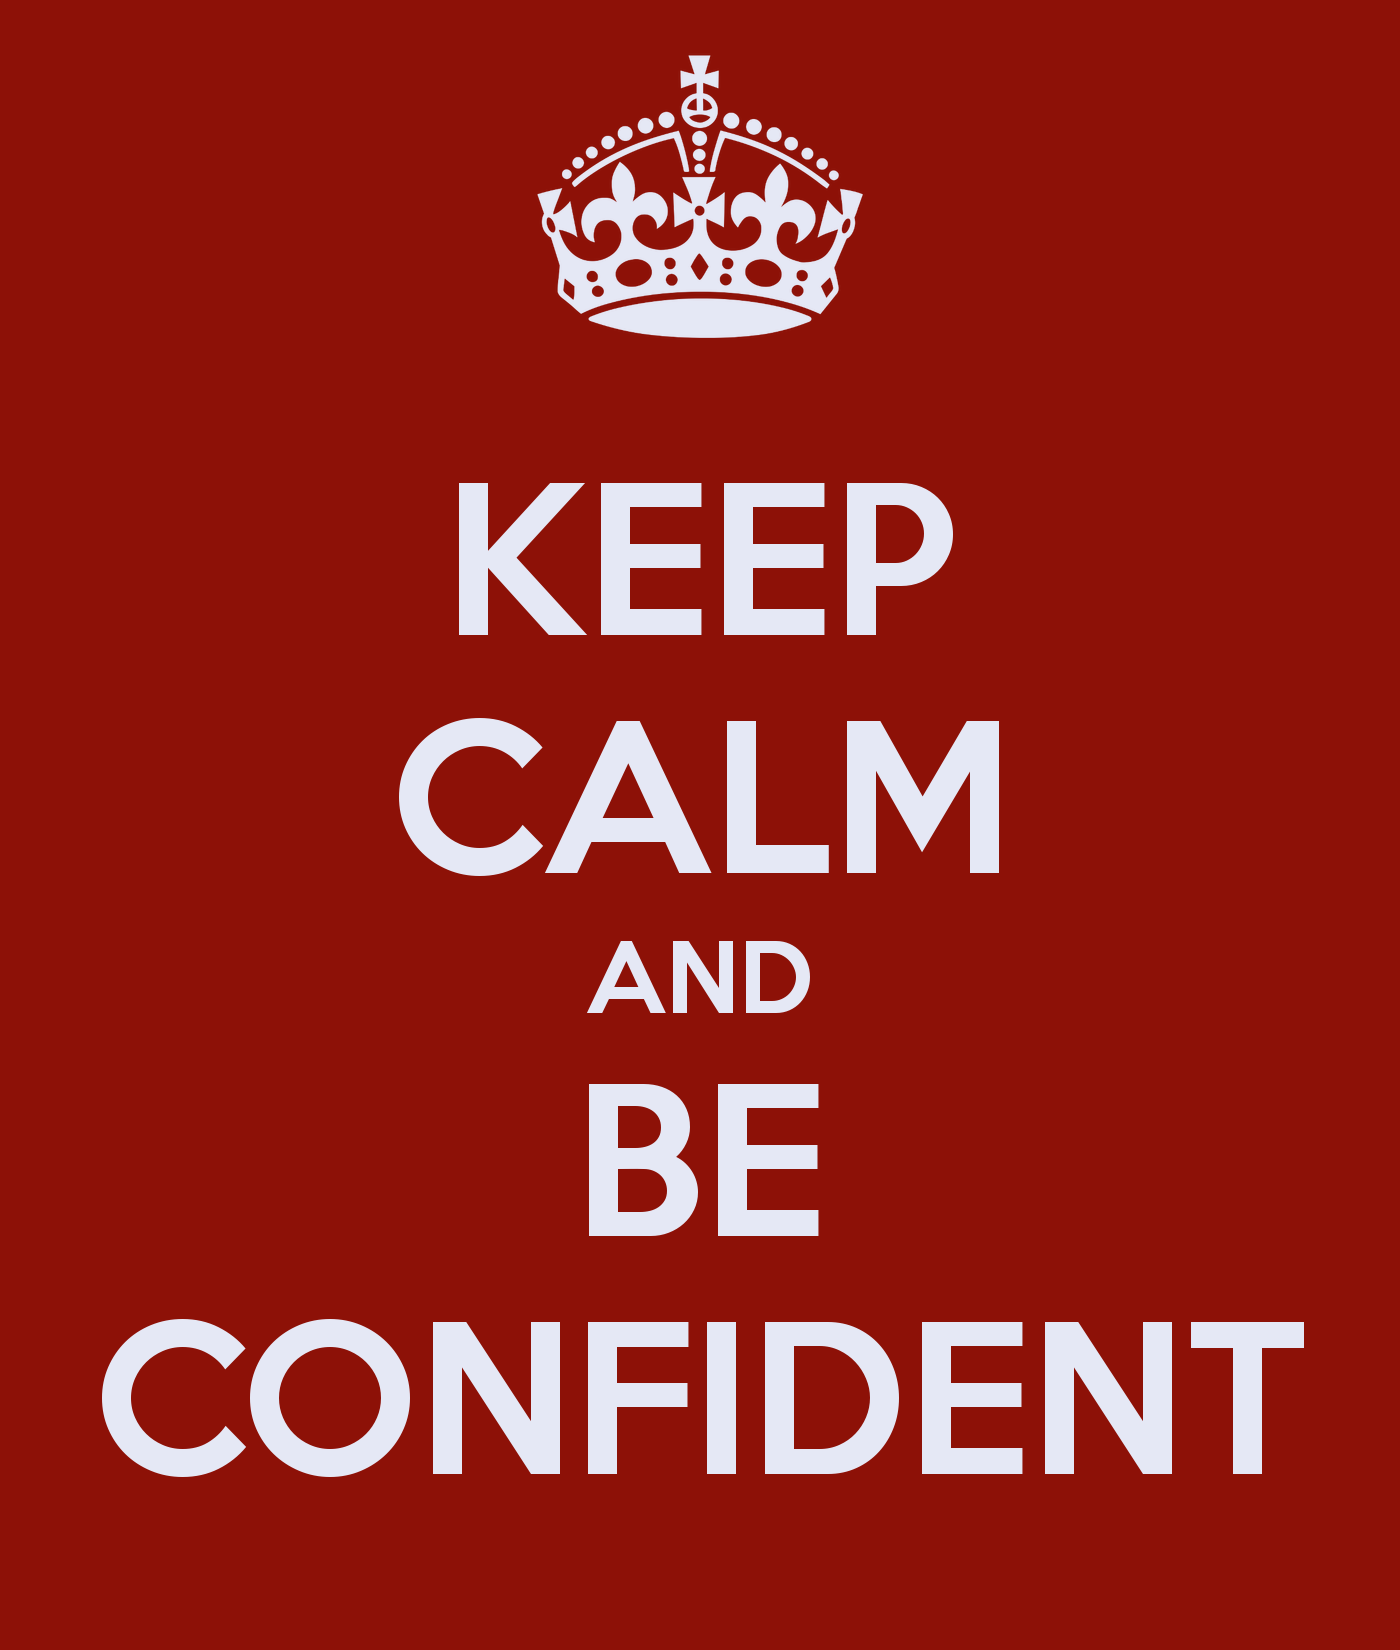 keep-calm-and-be-confident-18